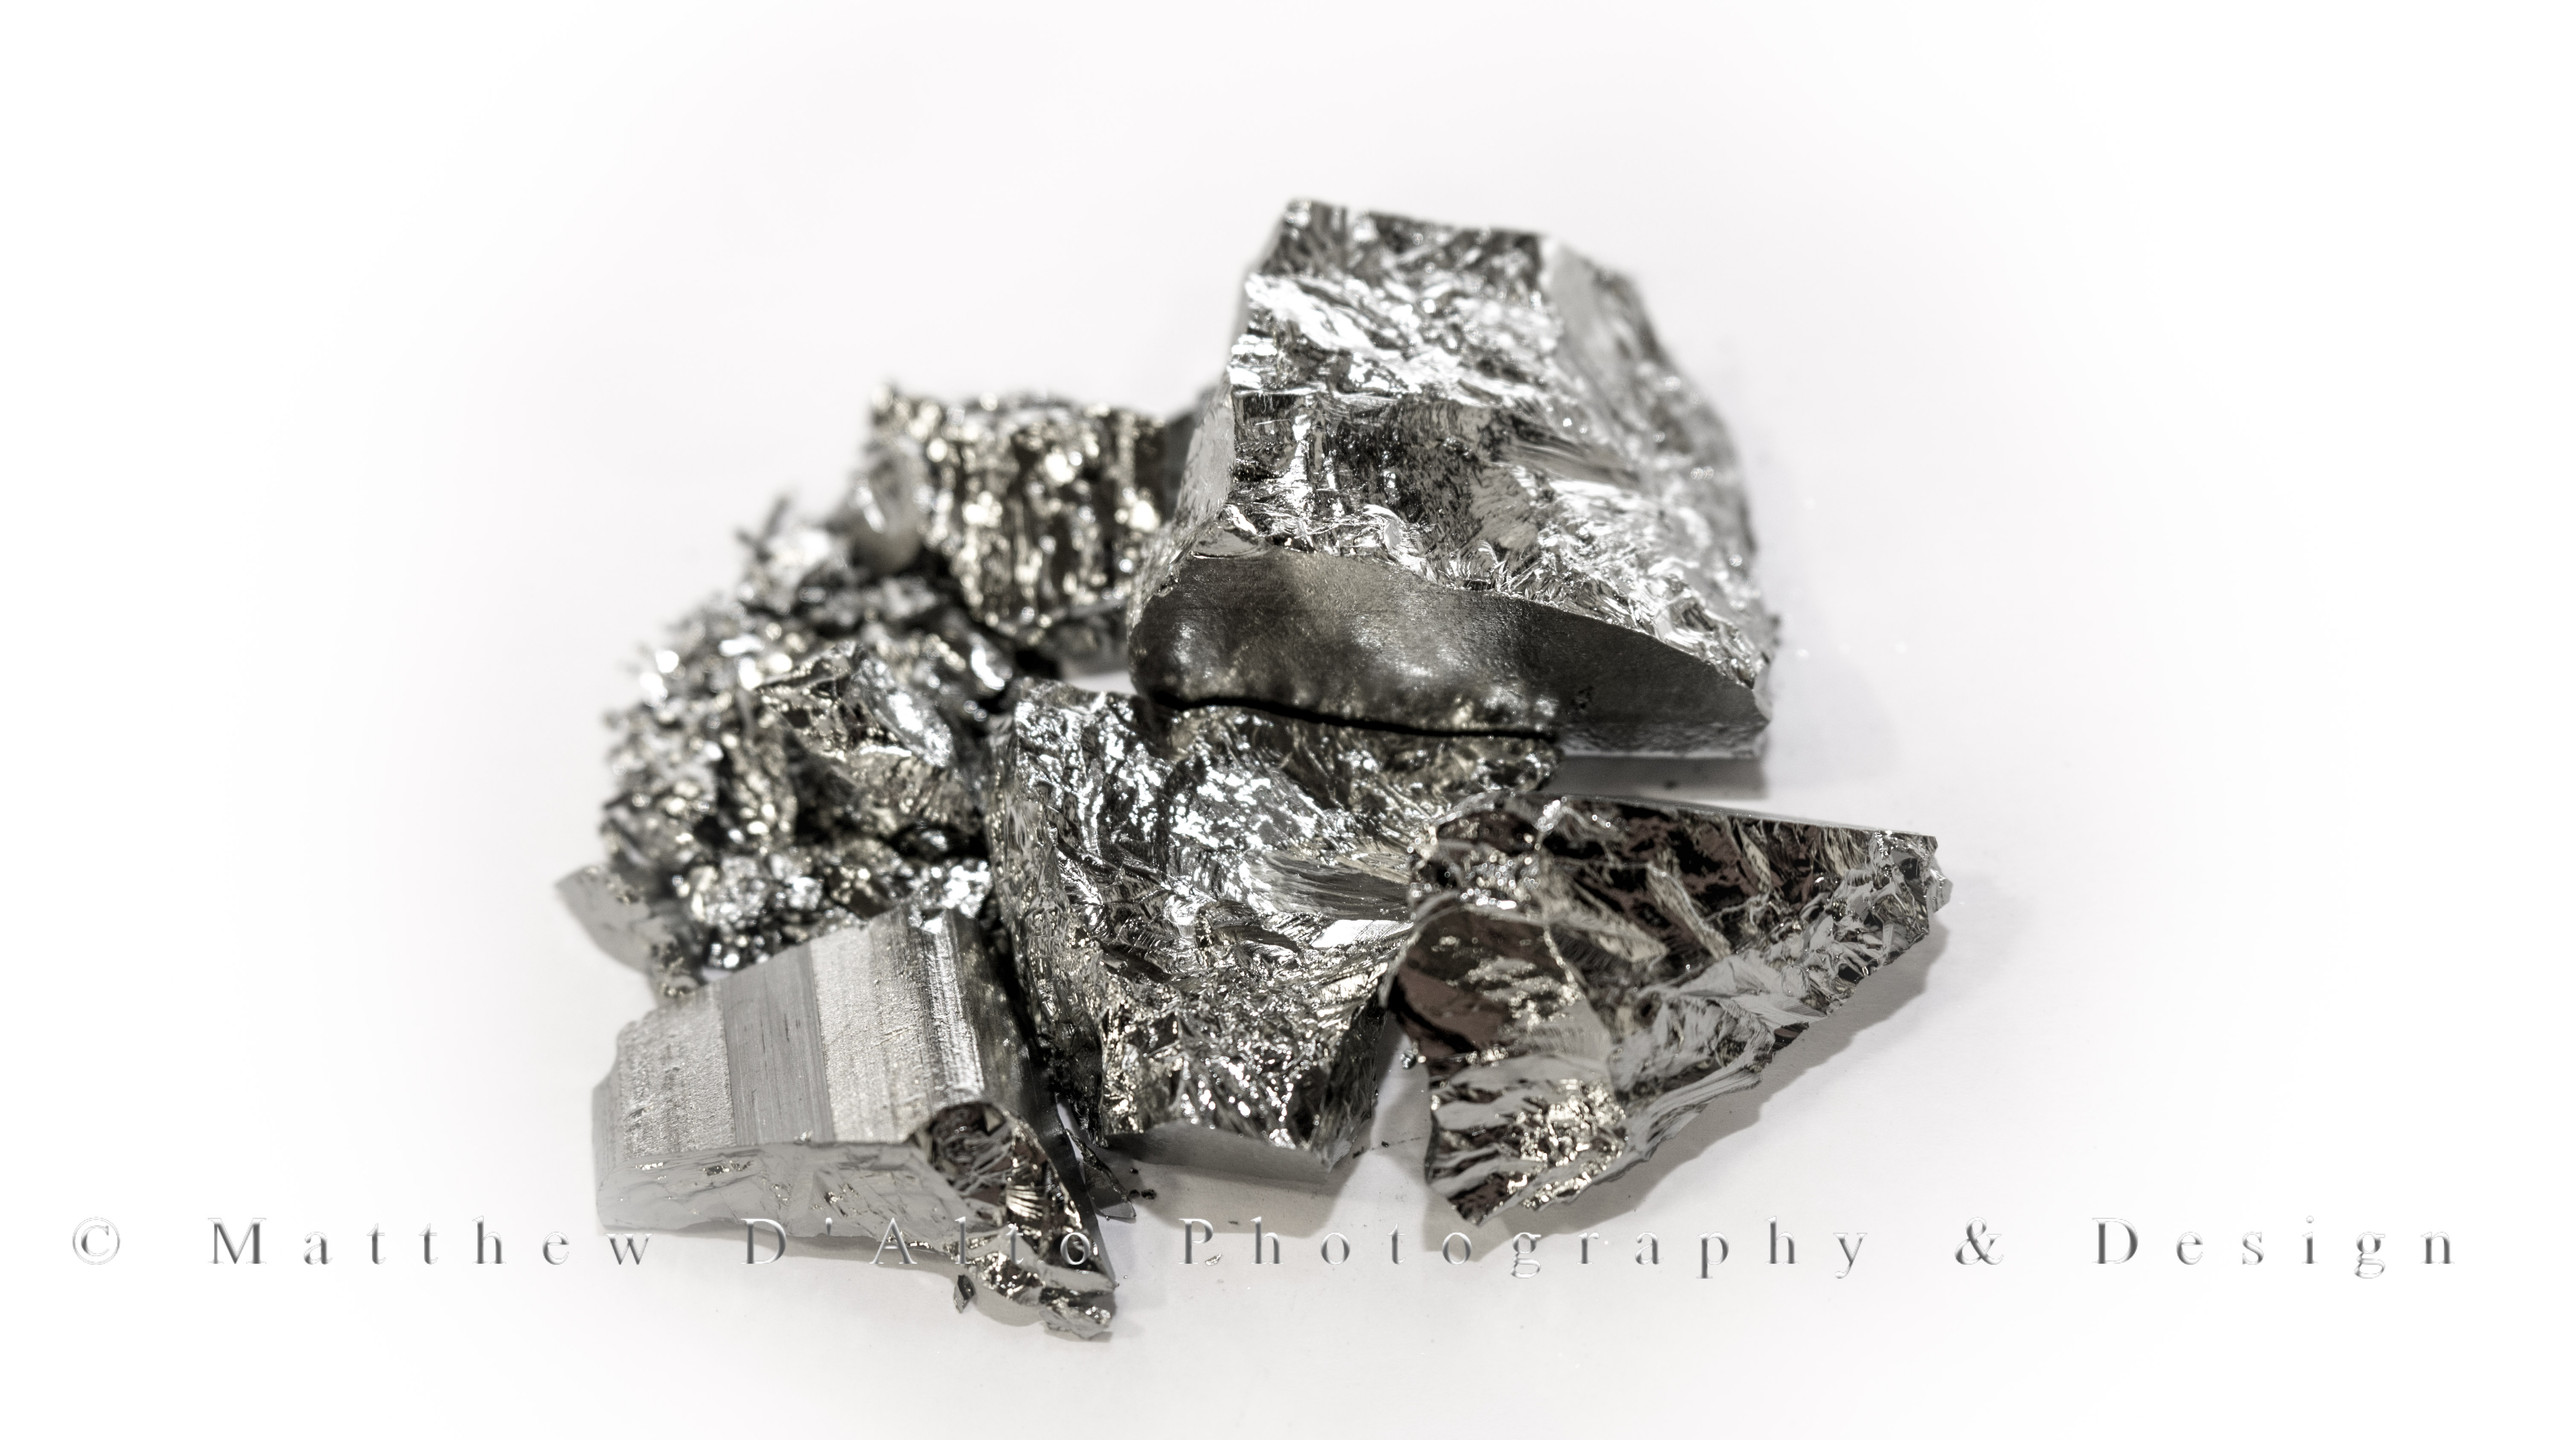 Corporate Product Photography by © Matthew D'Alto Photography & Design